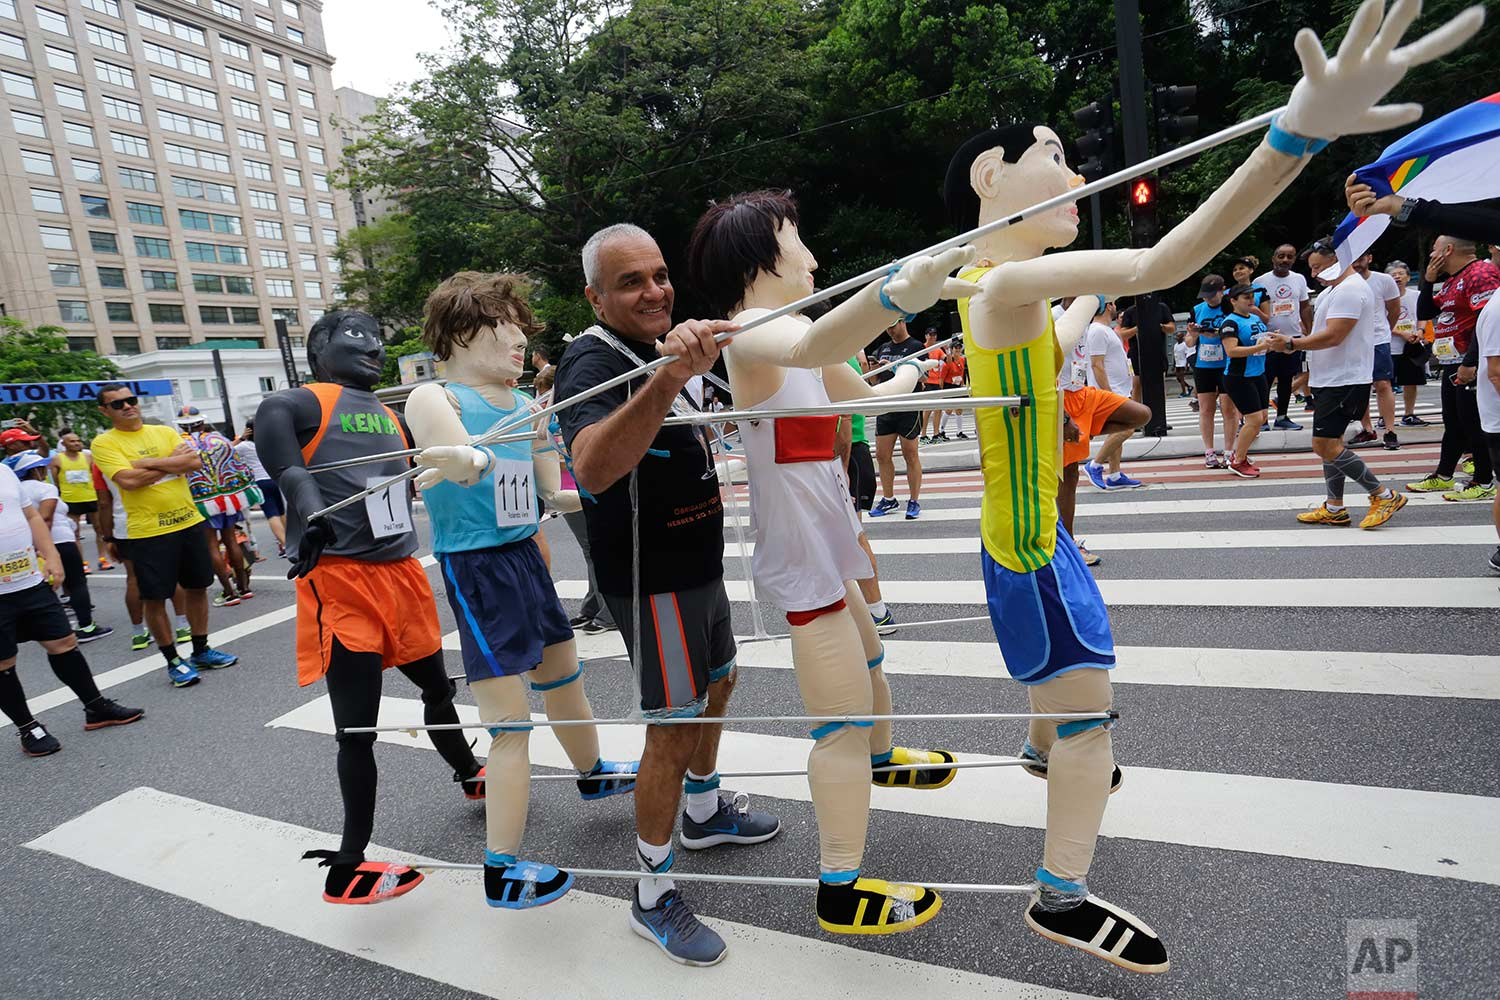 A runner stands with life-size puppets attached to him, prior to the start of the Sao Silvestre race in Sao Paulo, Brazil, early Sunday, Dec. 31, 2017. The 15-kilometer race is held annually on New Year's Eve. (AP Photo/Nelson Antoine)